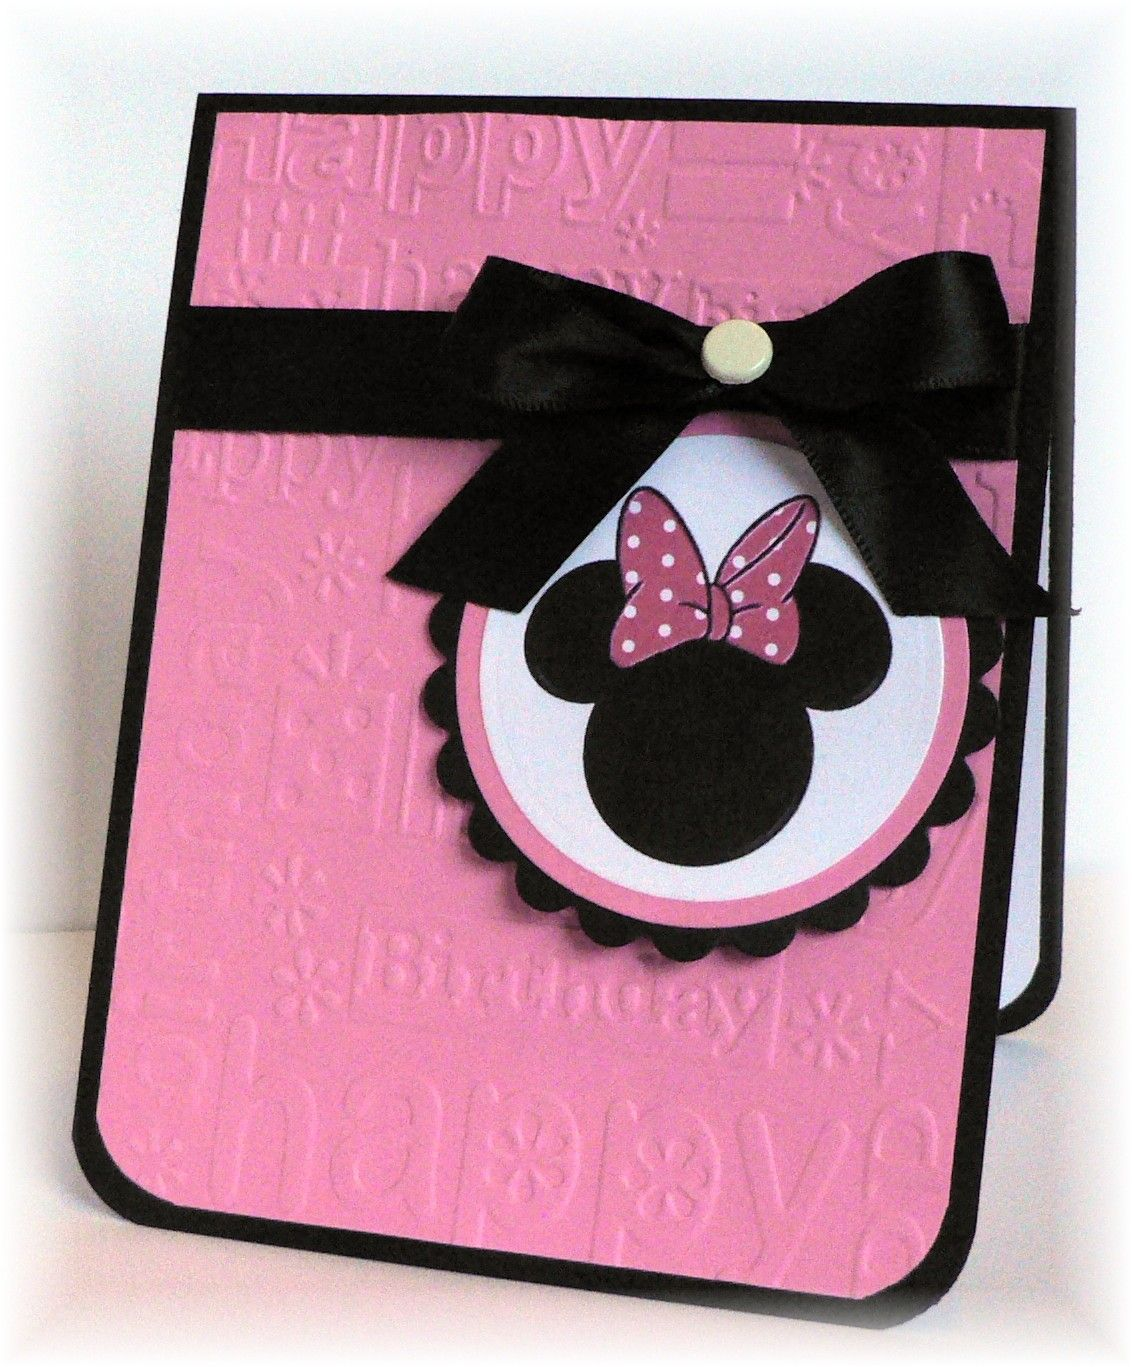 Lil bit of me minnie mouse disney card minnie mouse party lil bit of me minnie mouse disney card disney addictkids birthday cardsdisney kristyandbryce Choice Image